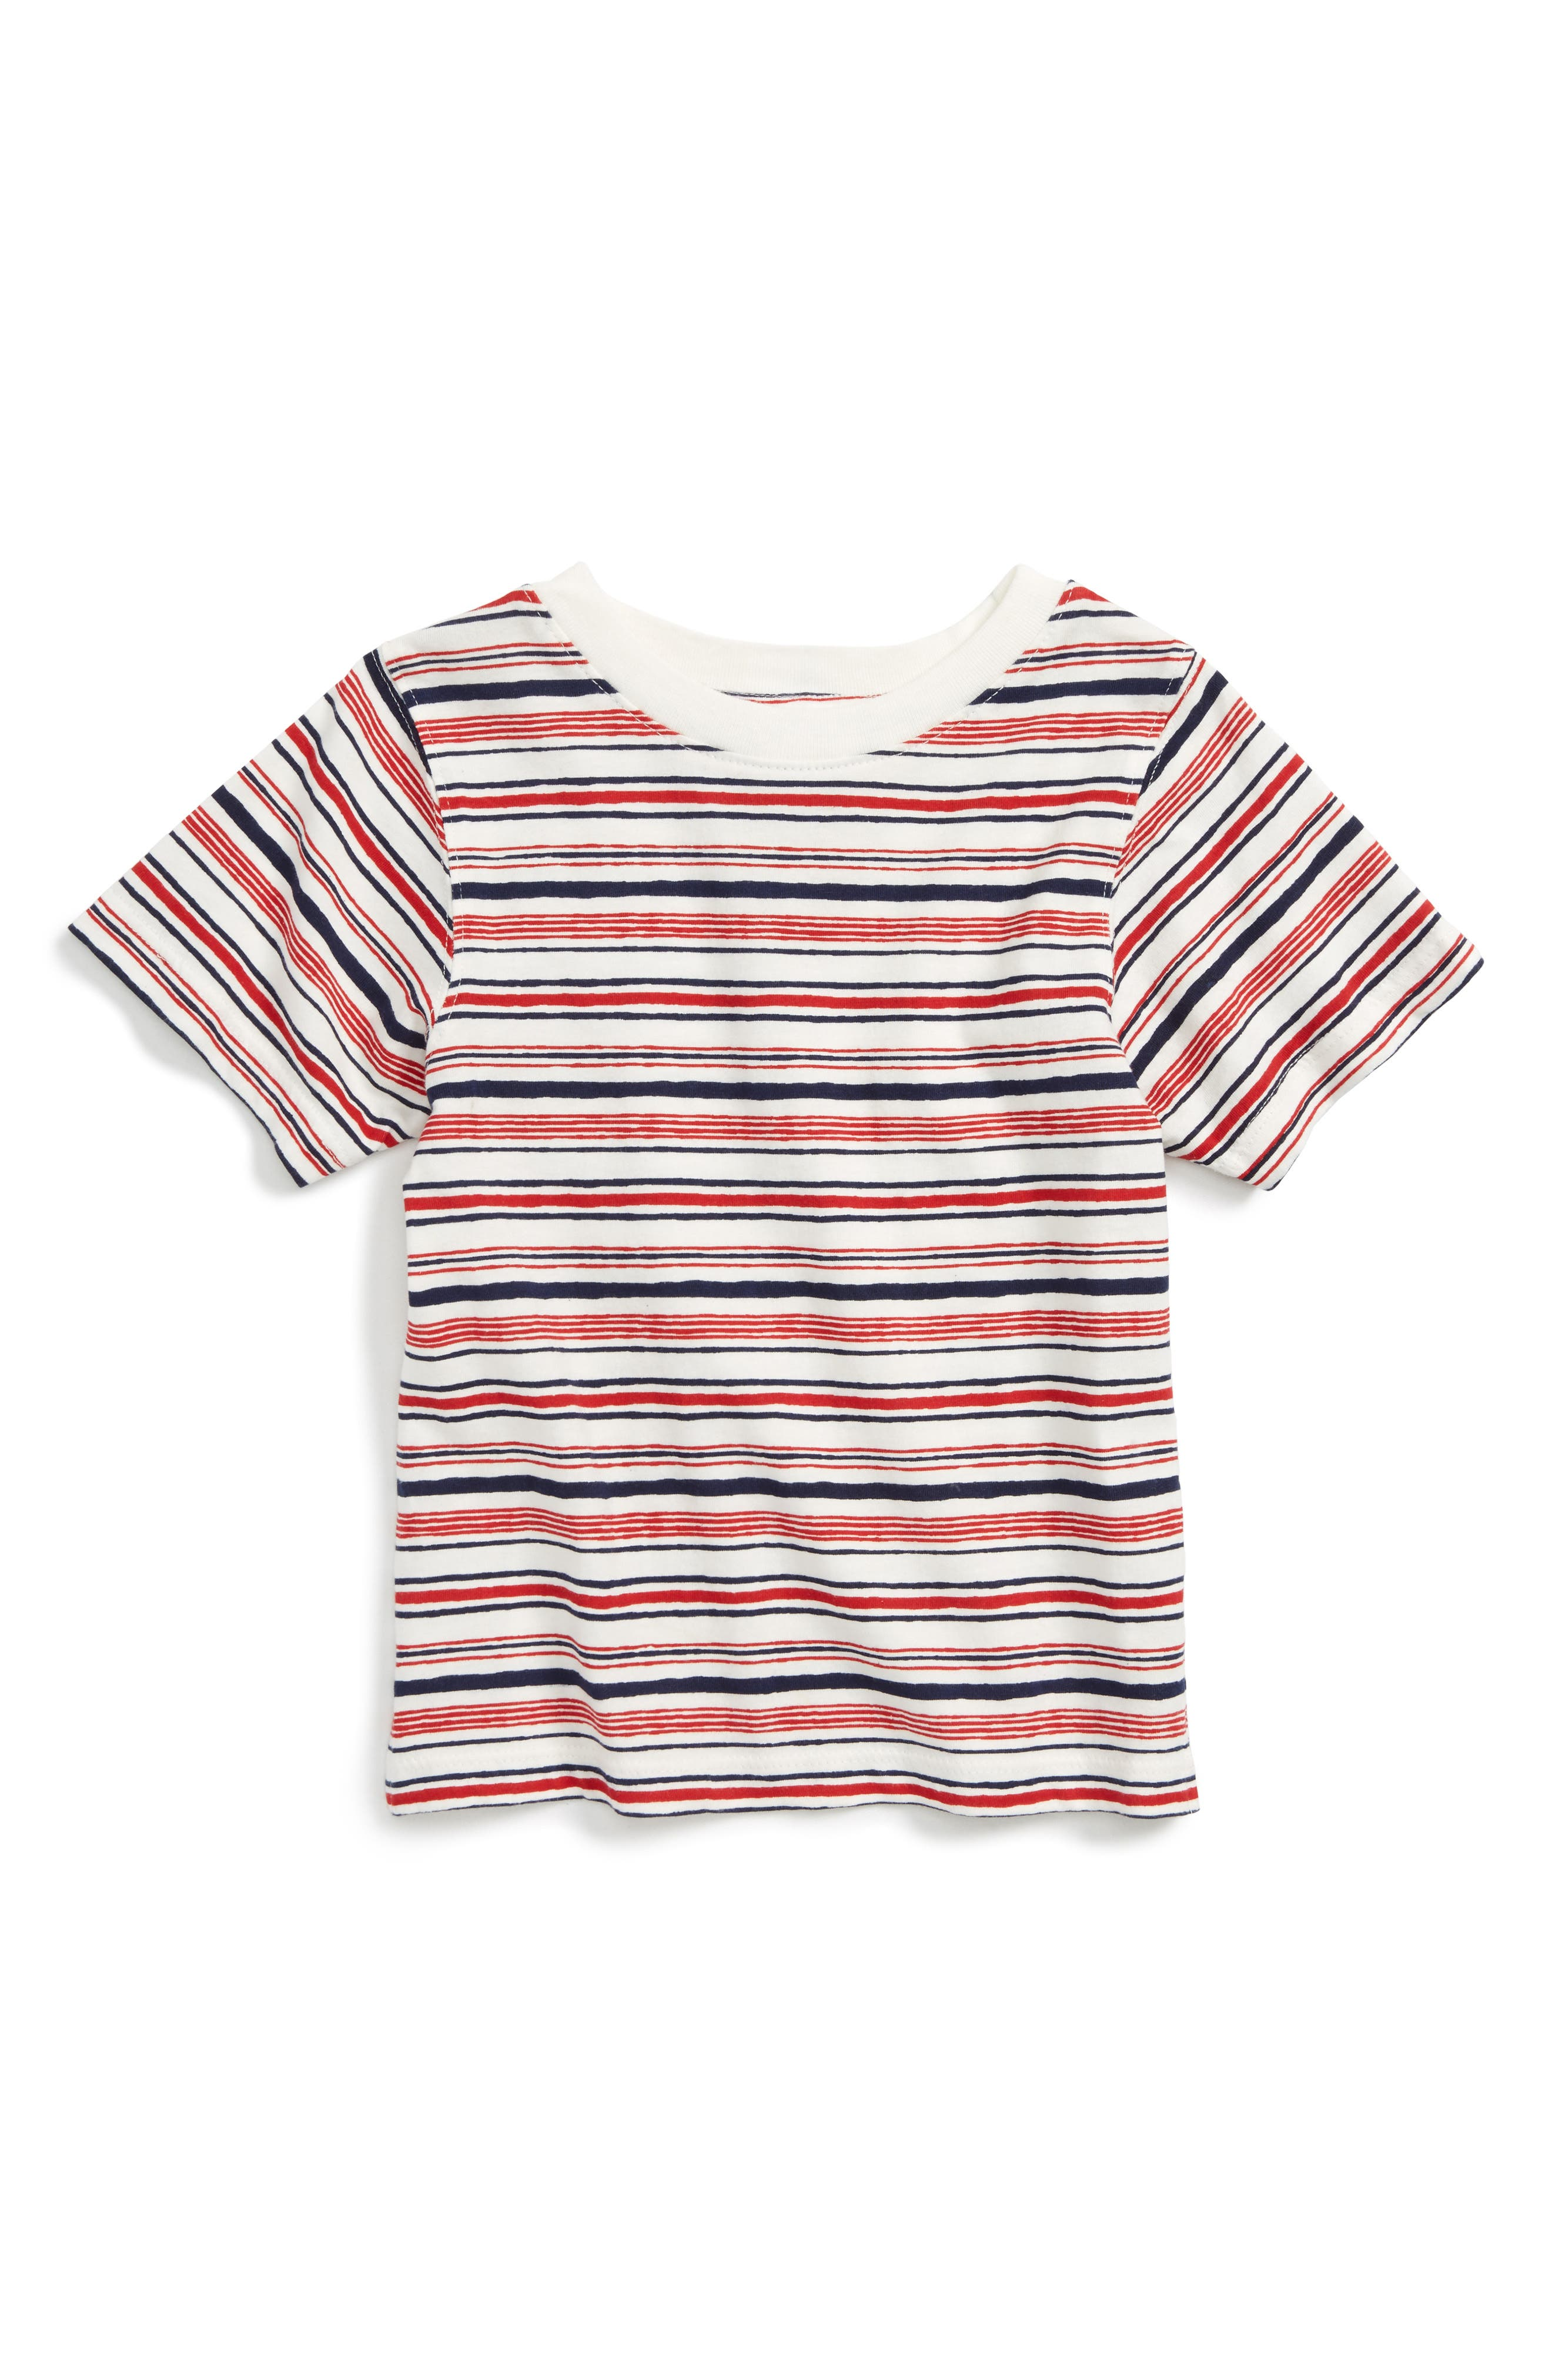 Peek Stripe T-Shirt (Toddler Boys, Little Boys & Big Boys)